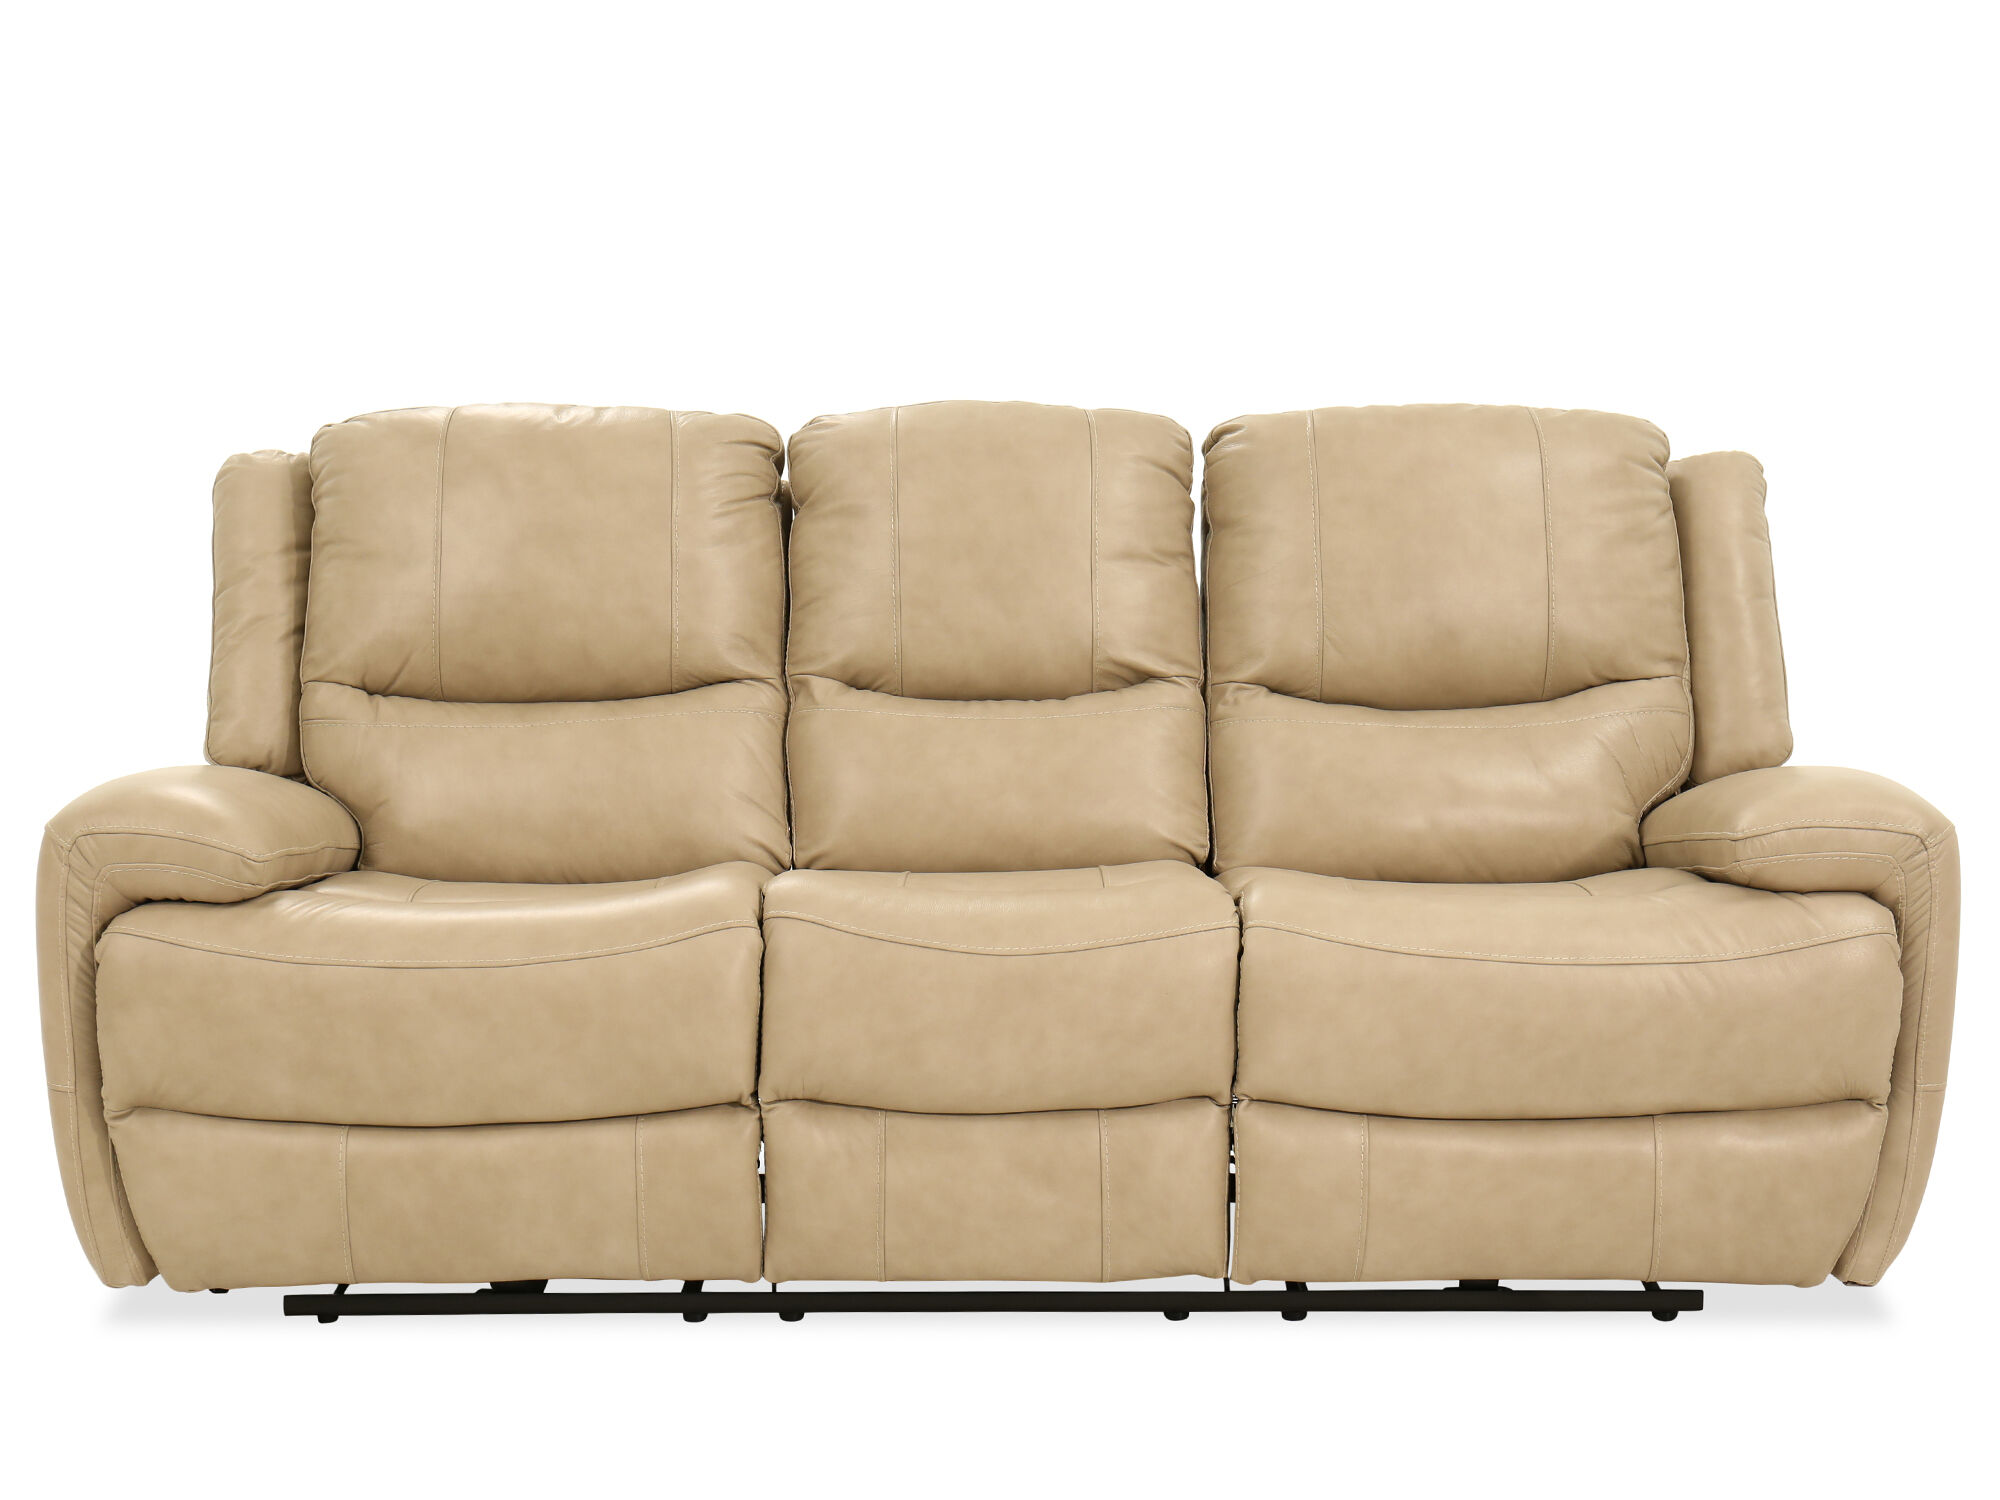 Leather Power Reclining Sofa In Stone Mathis Brothers Furniture